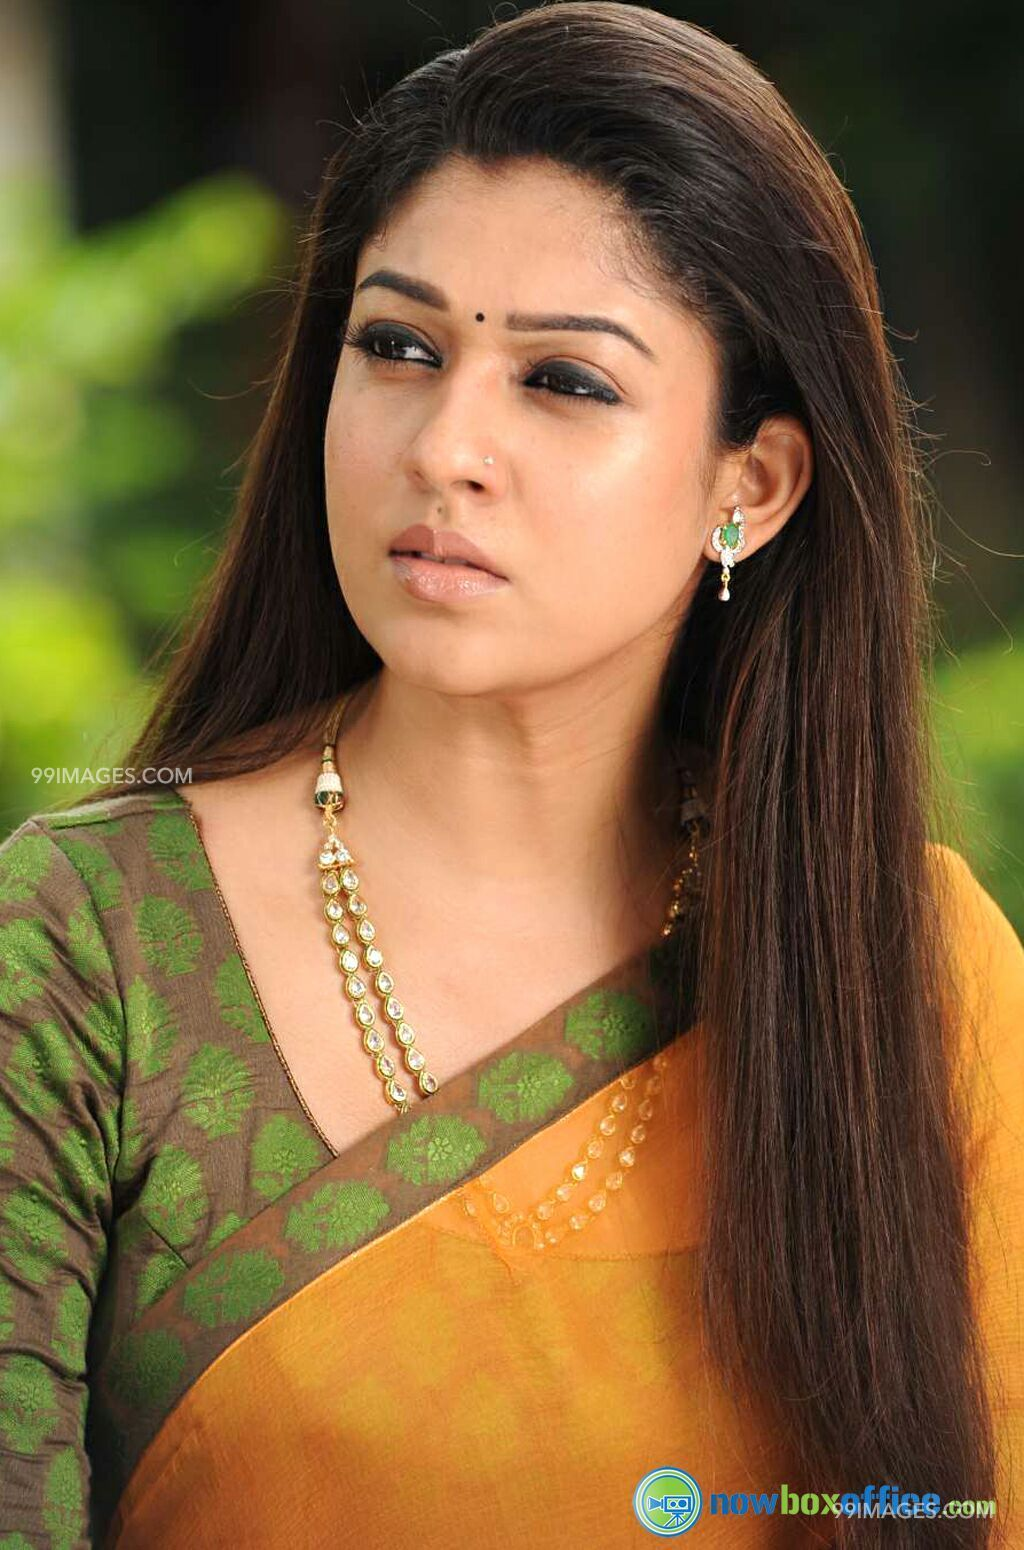 Nayanthara Hot HD Photos, Wallpapers, WhatsApp DP (1080p) (832) - Nayanthara